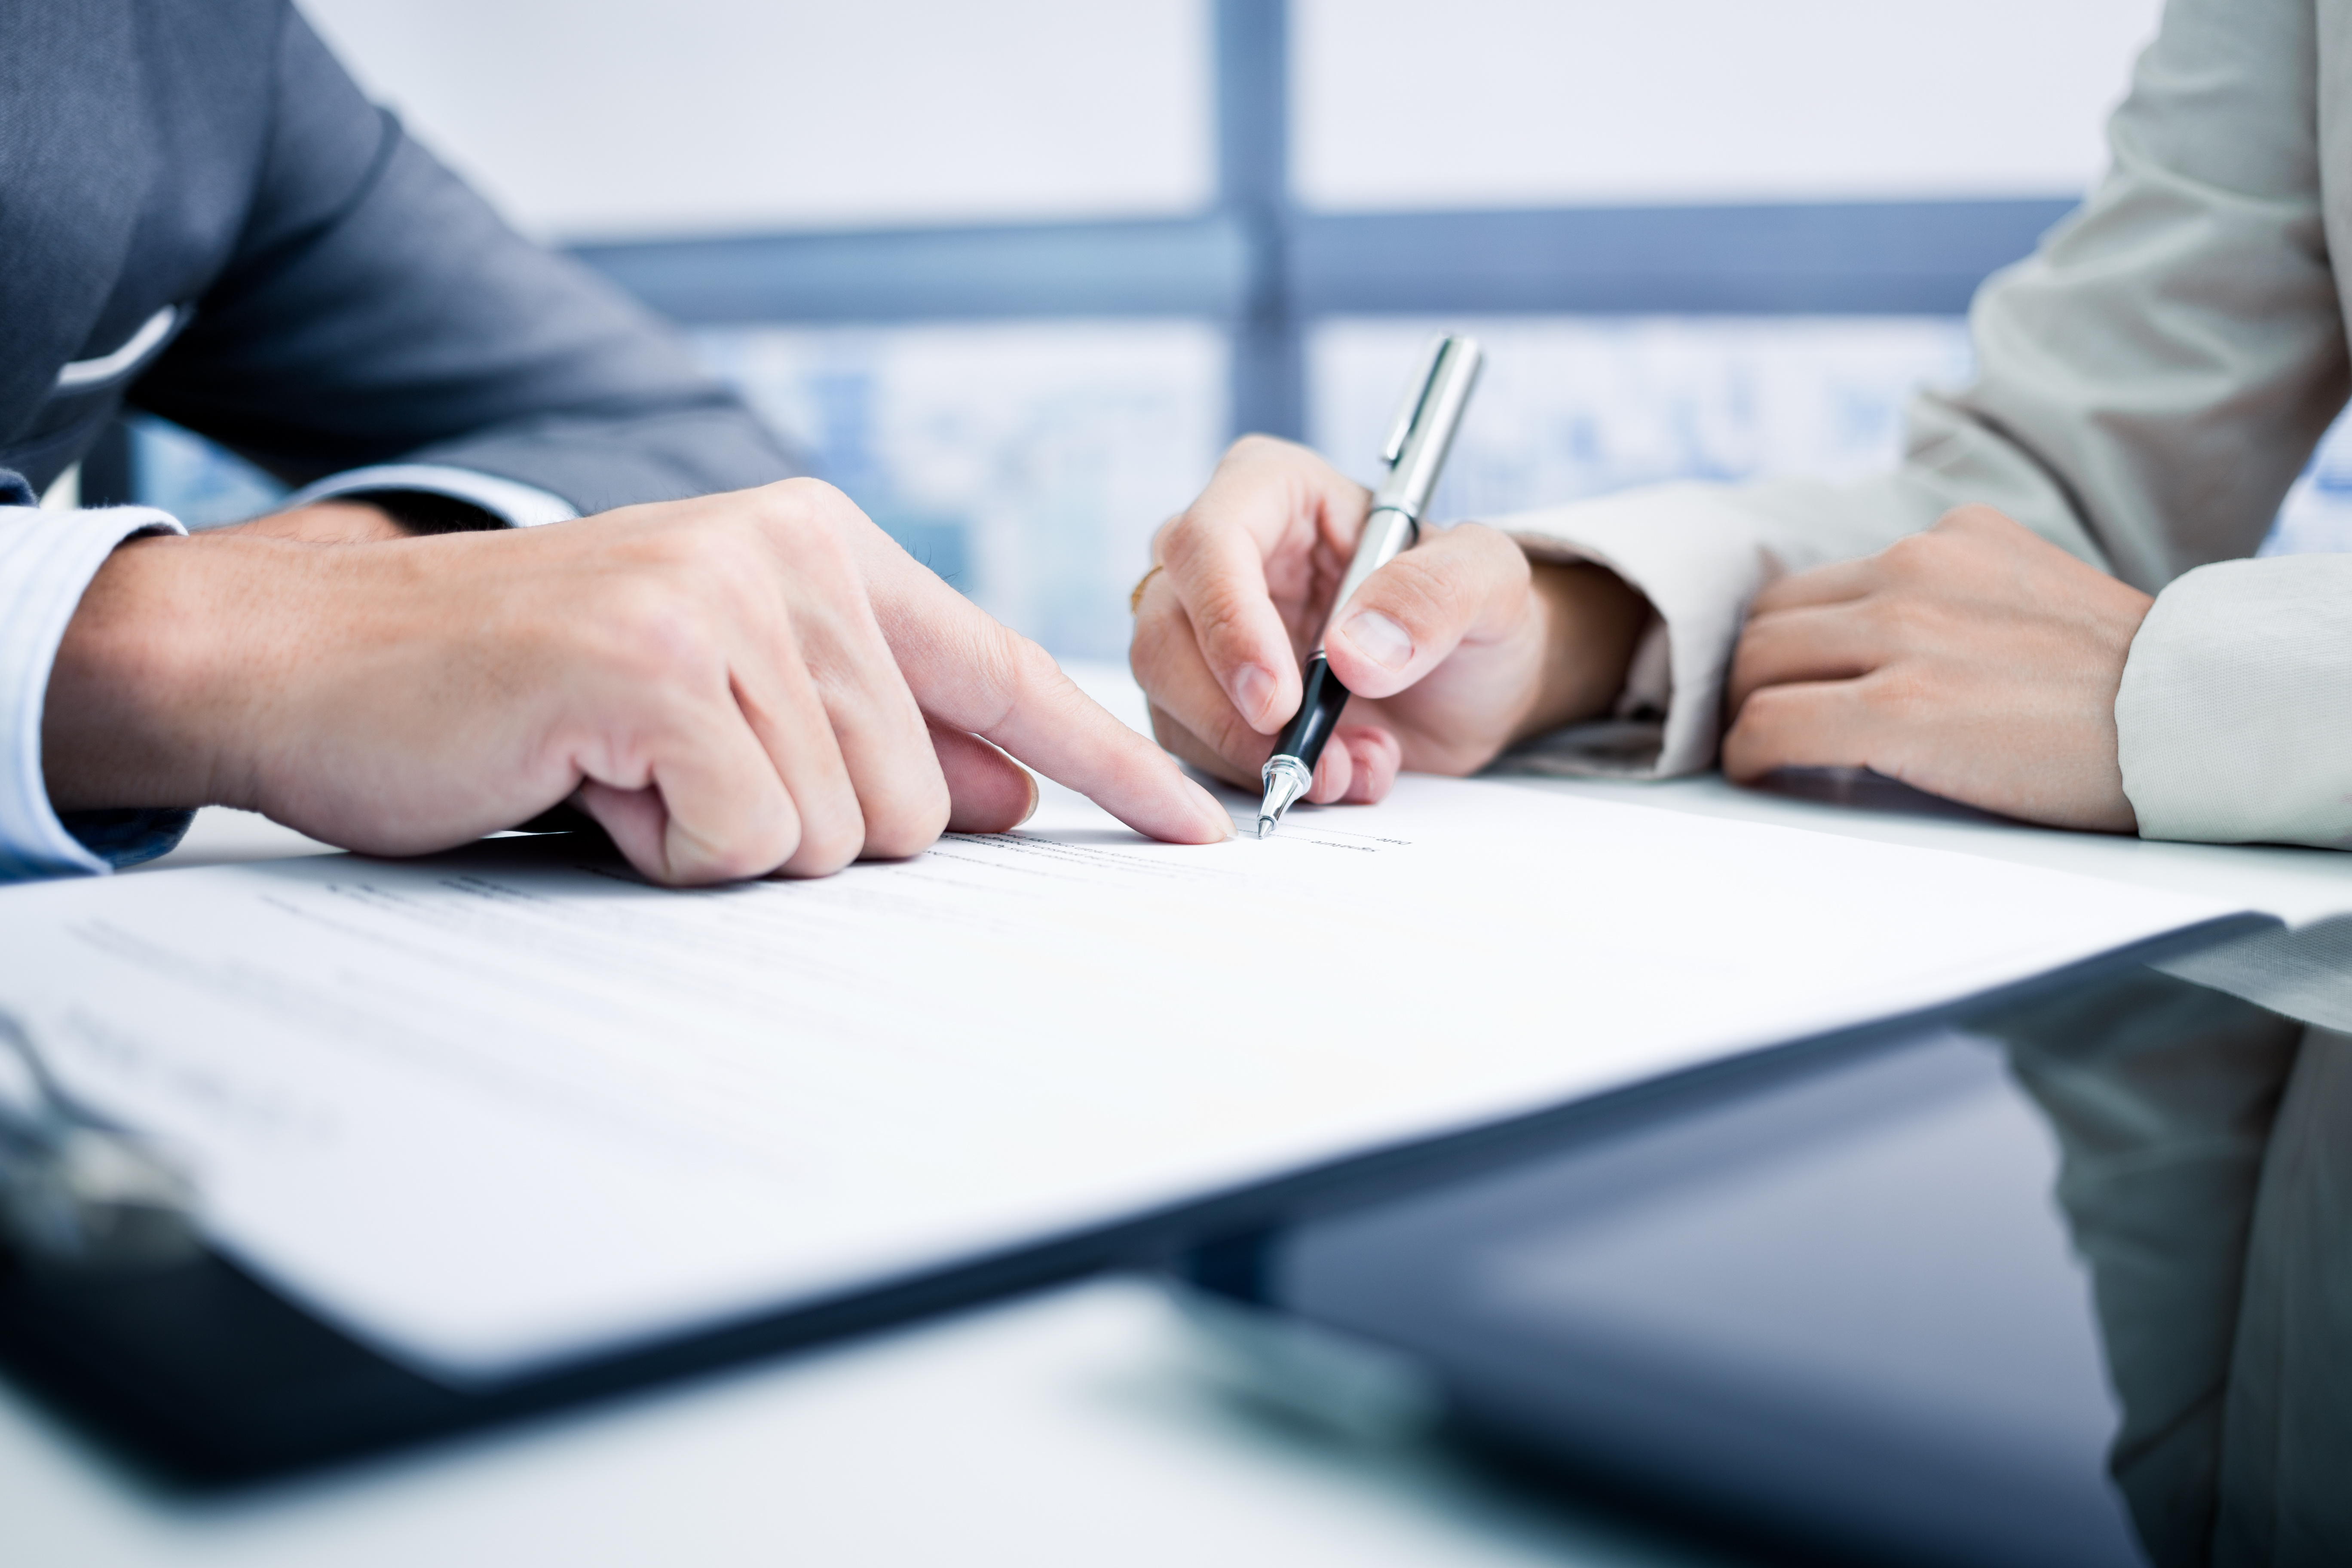 Document signing could be about to become more straightforward